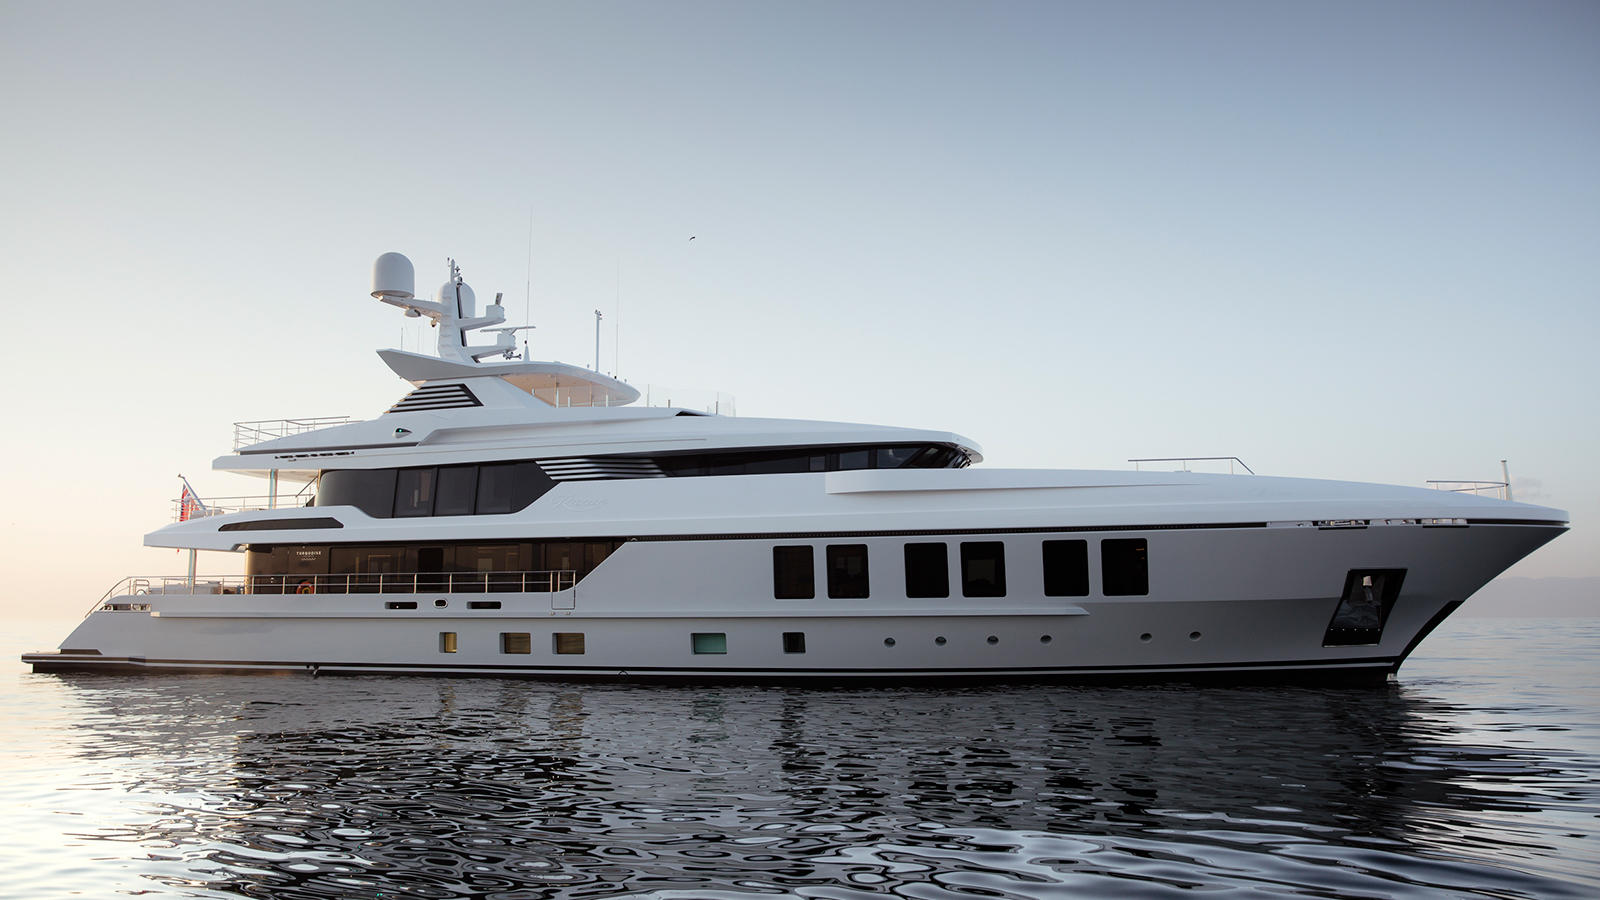 Review Of 47m Turquoise Yacht RAZAN At Cannes Yachting